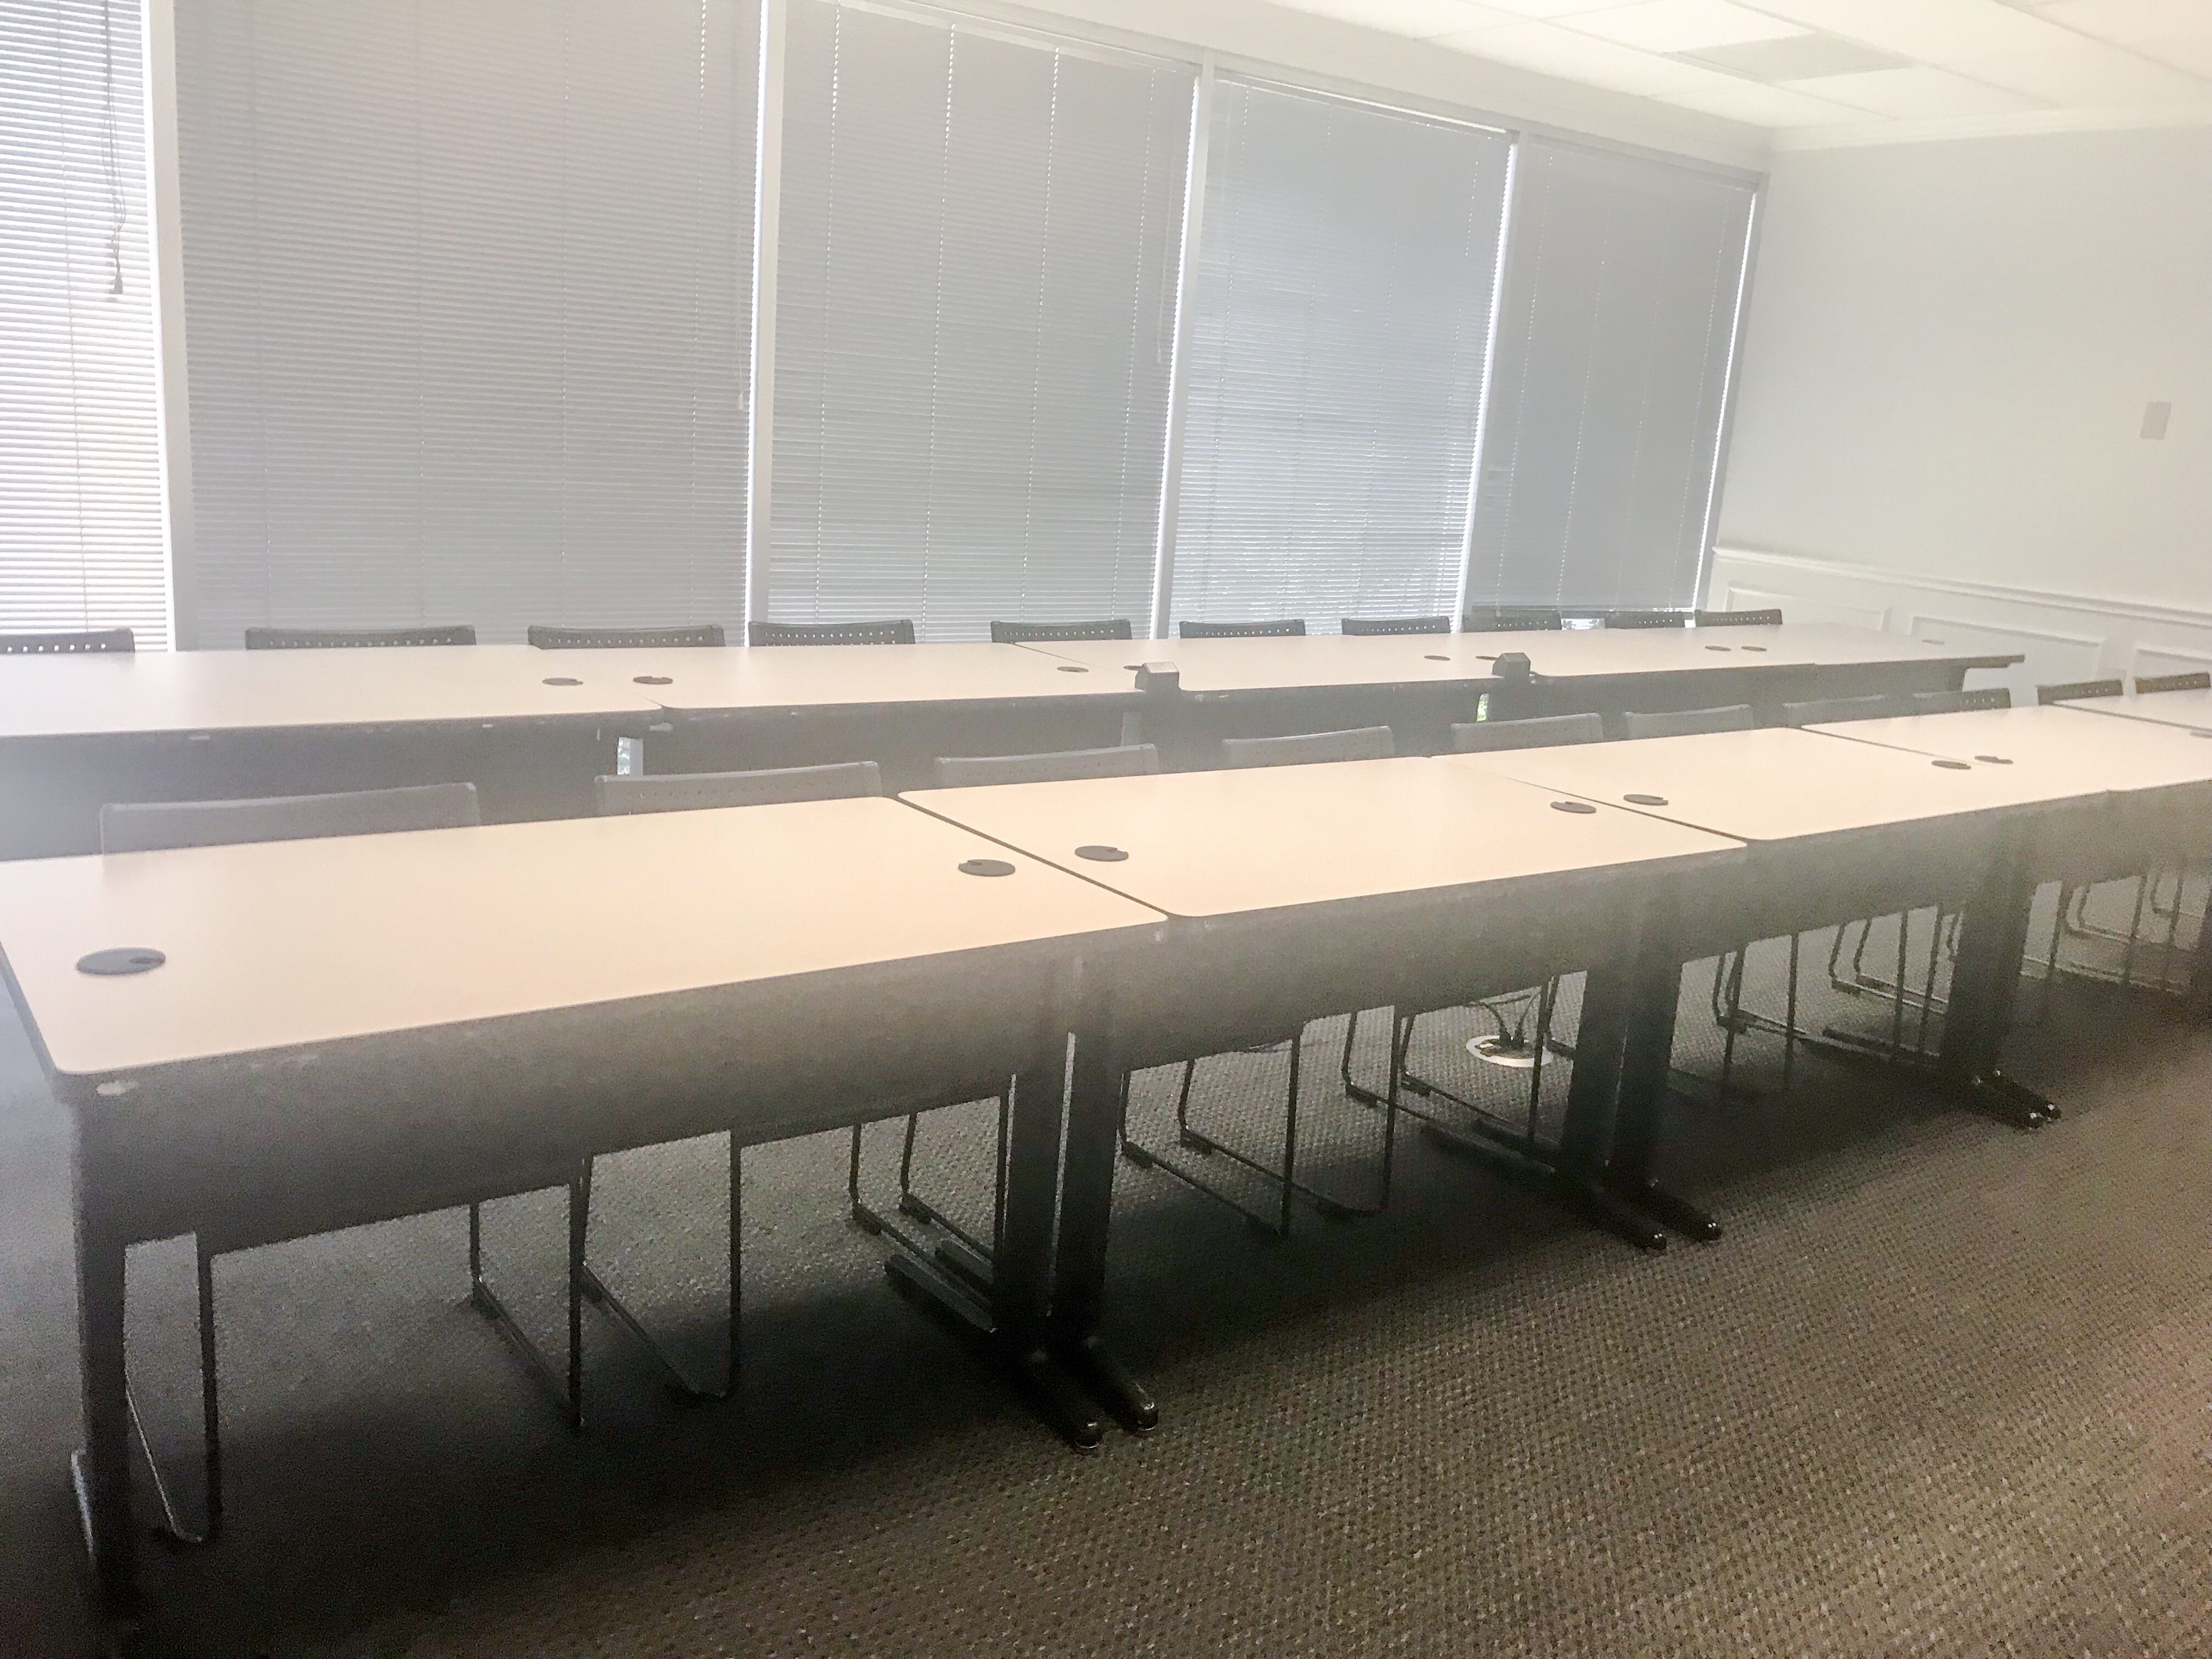 Seats up to 24 in classroom style